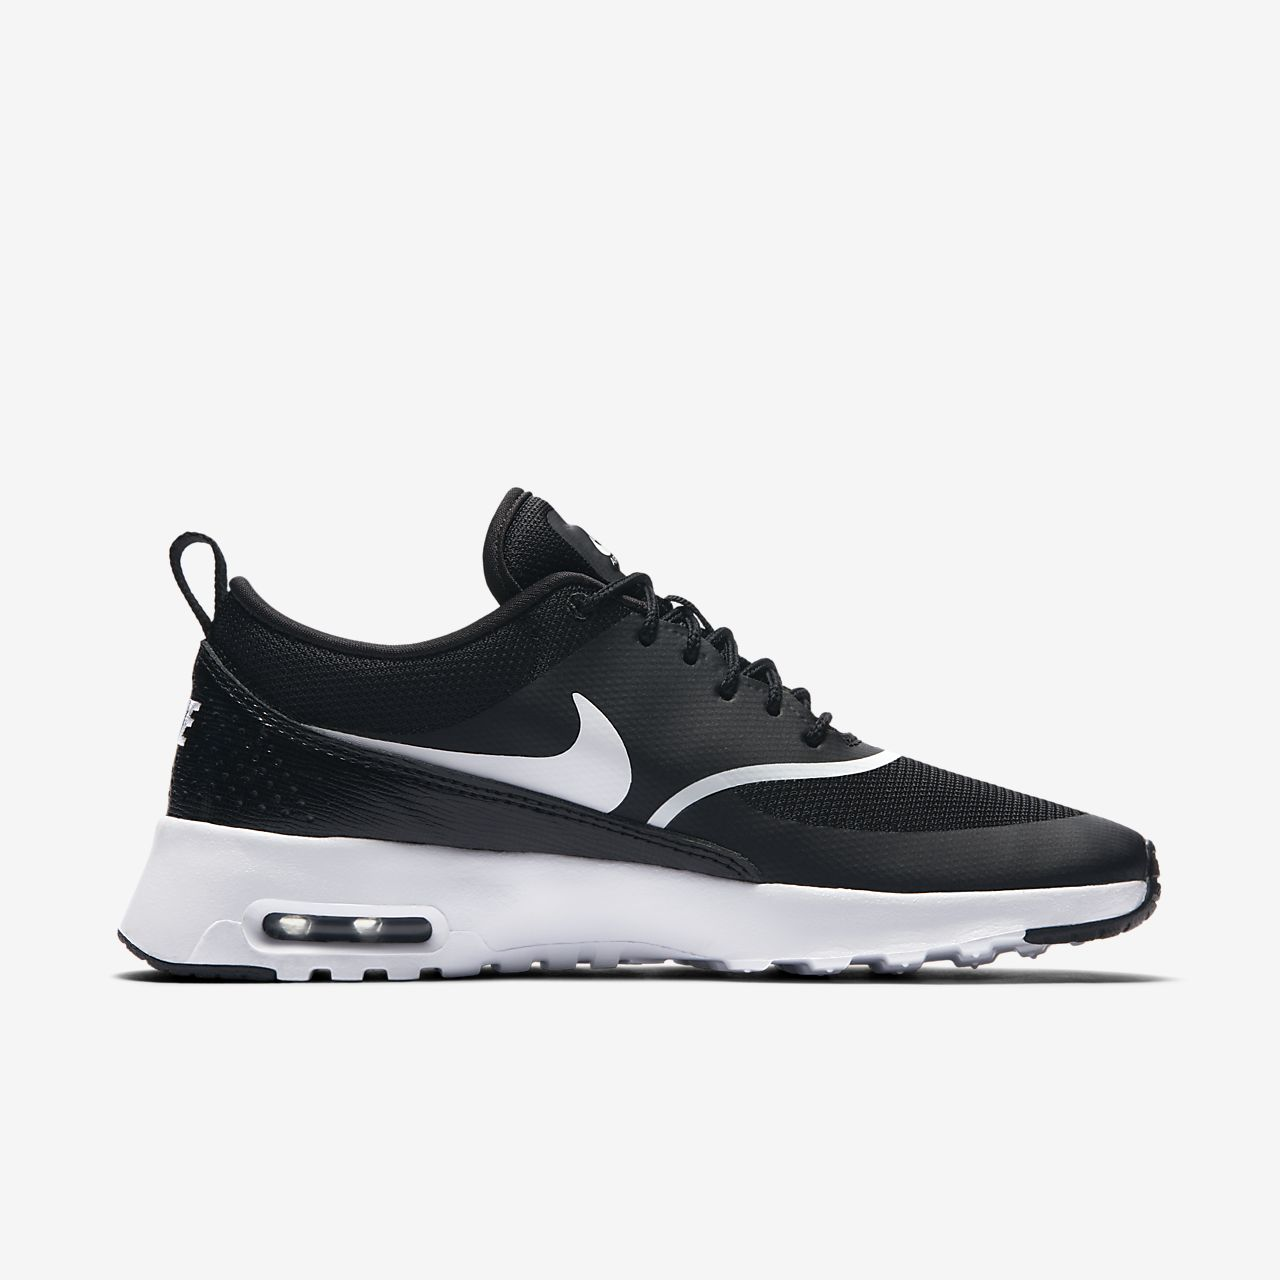 nike air max 2017 women's black nz